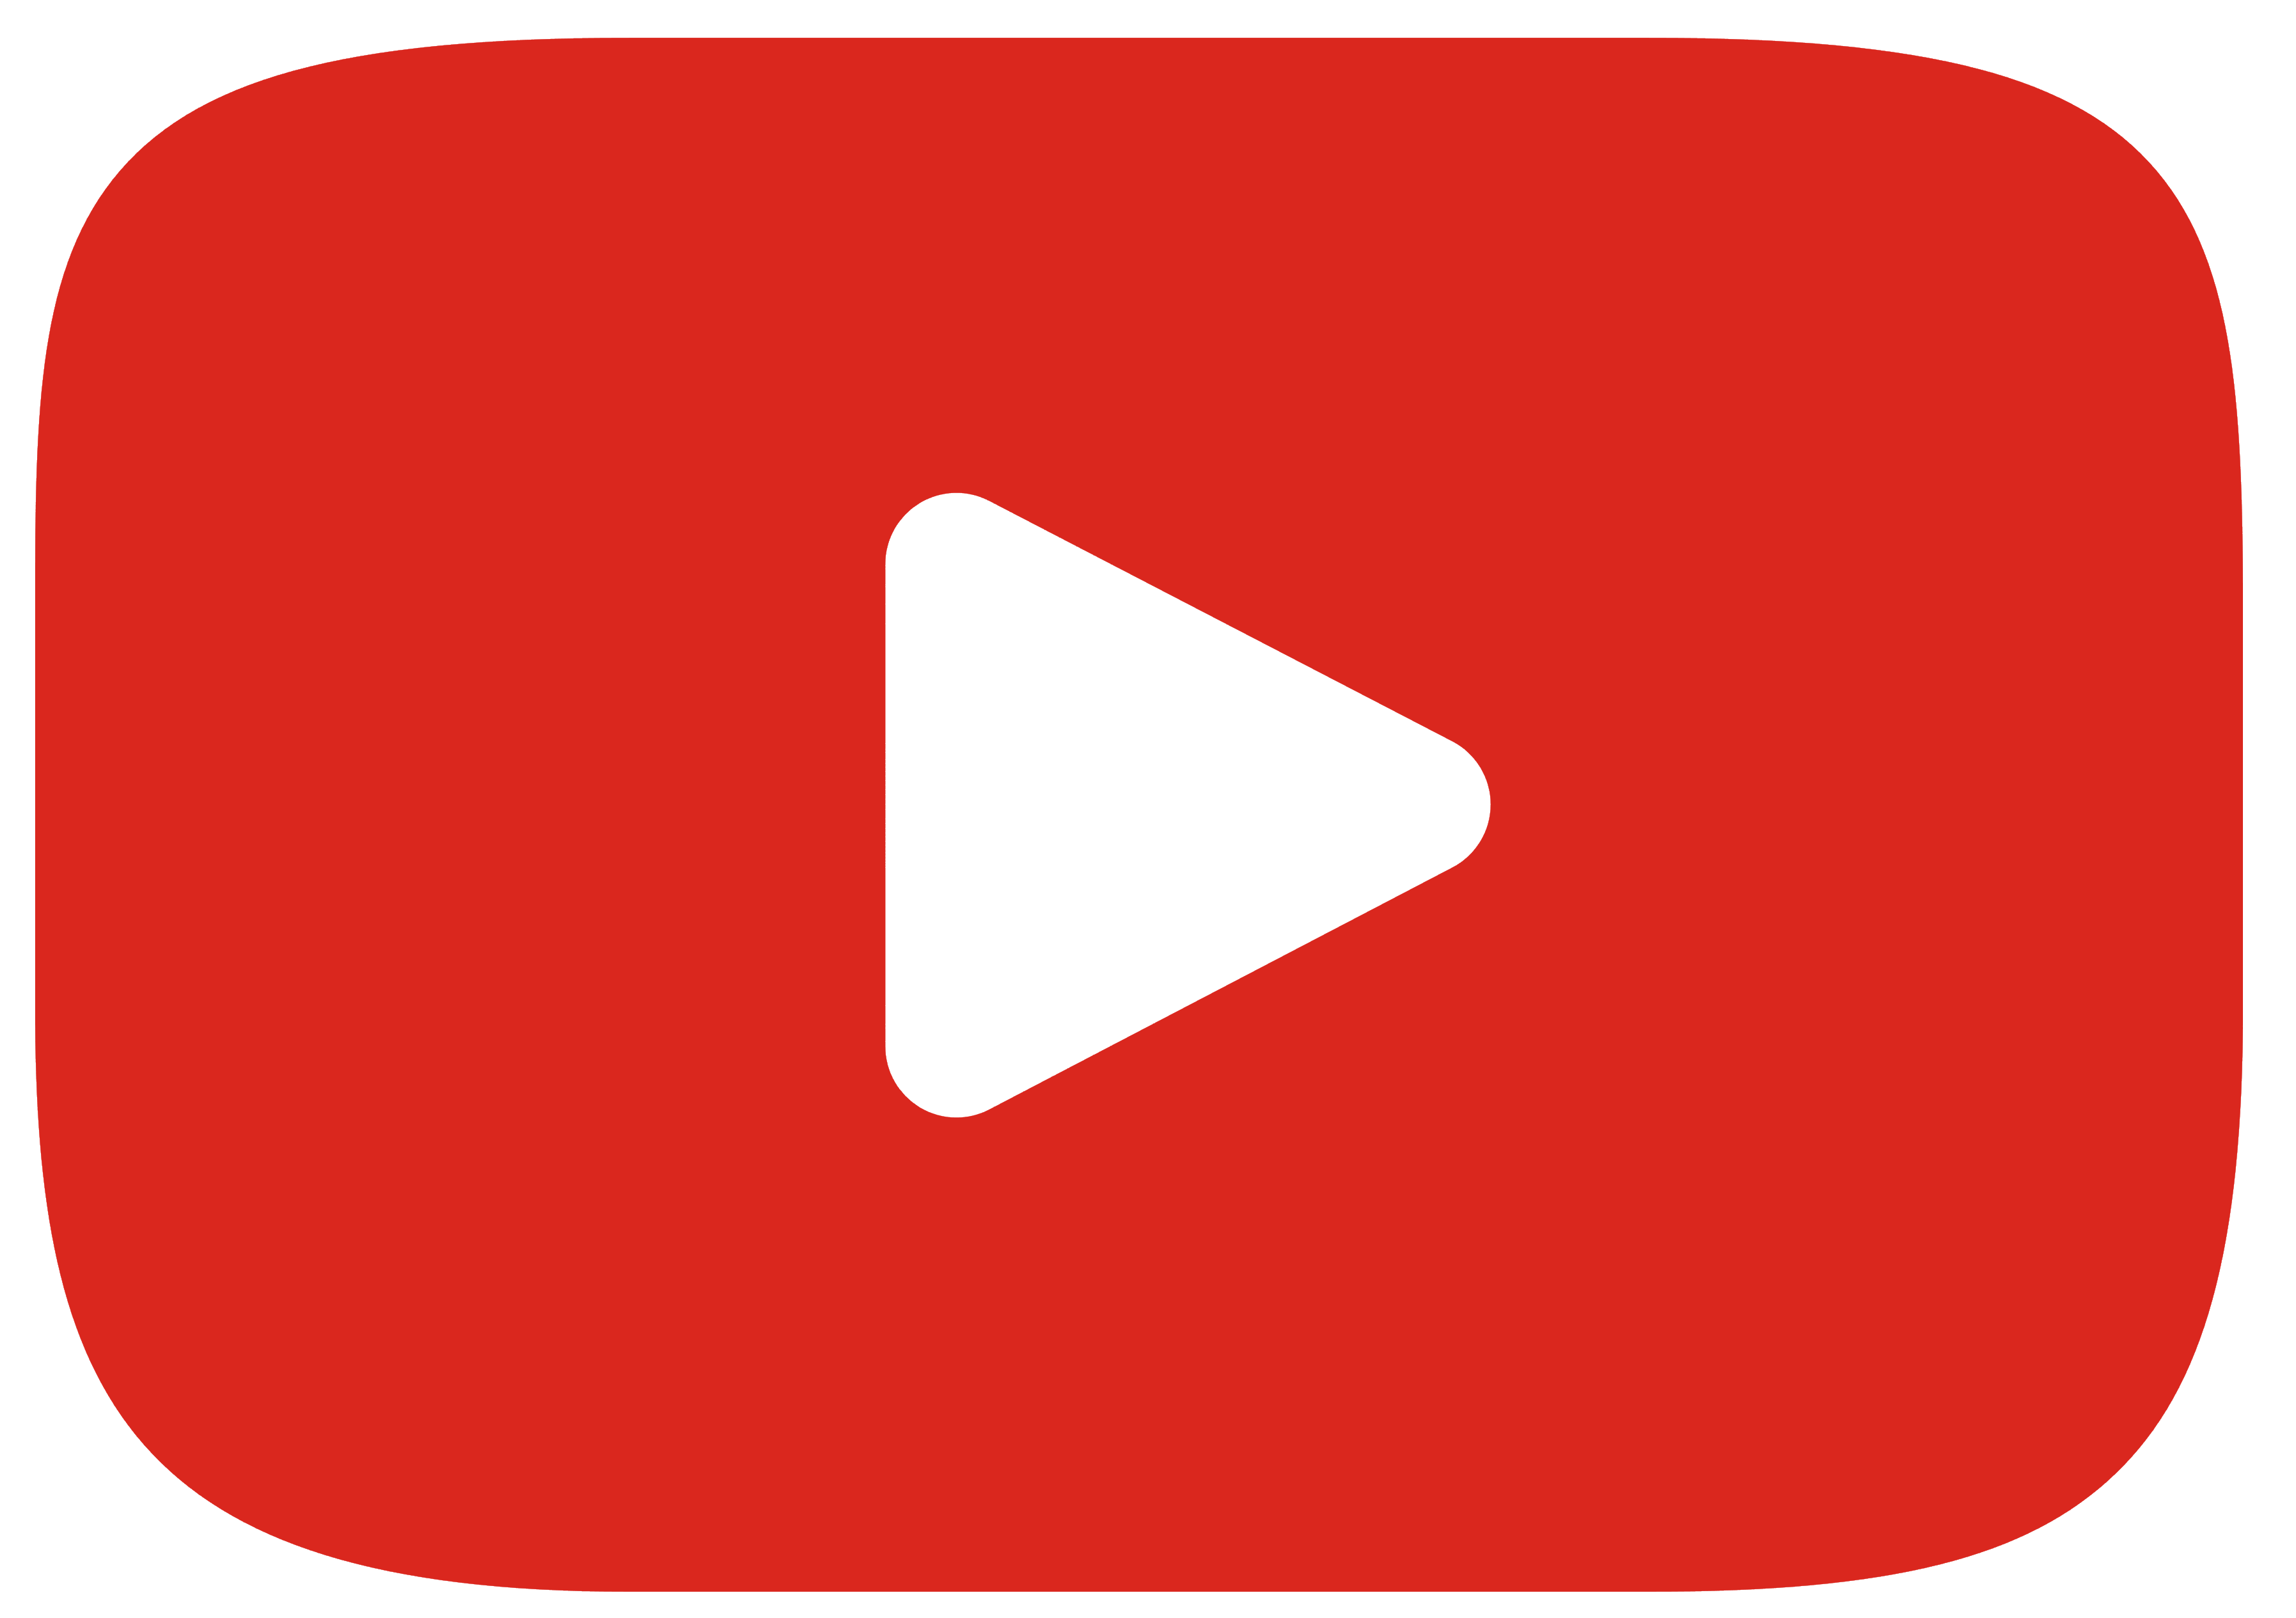 YouTube Play Button Computer Icons Clip art.